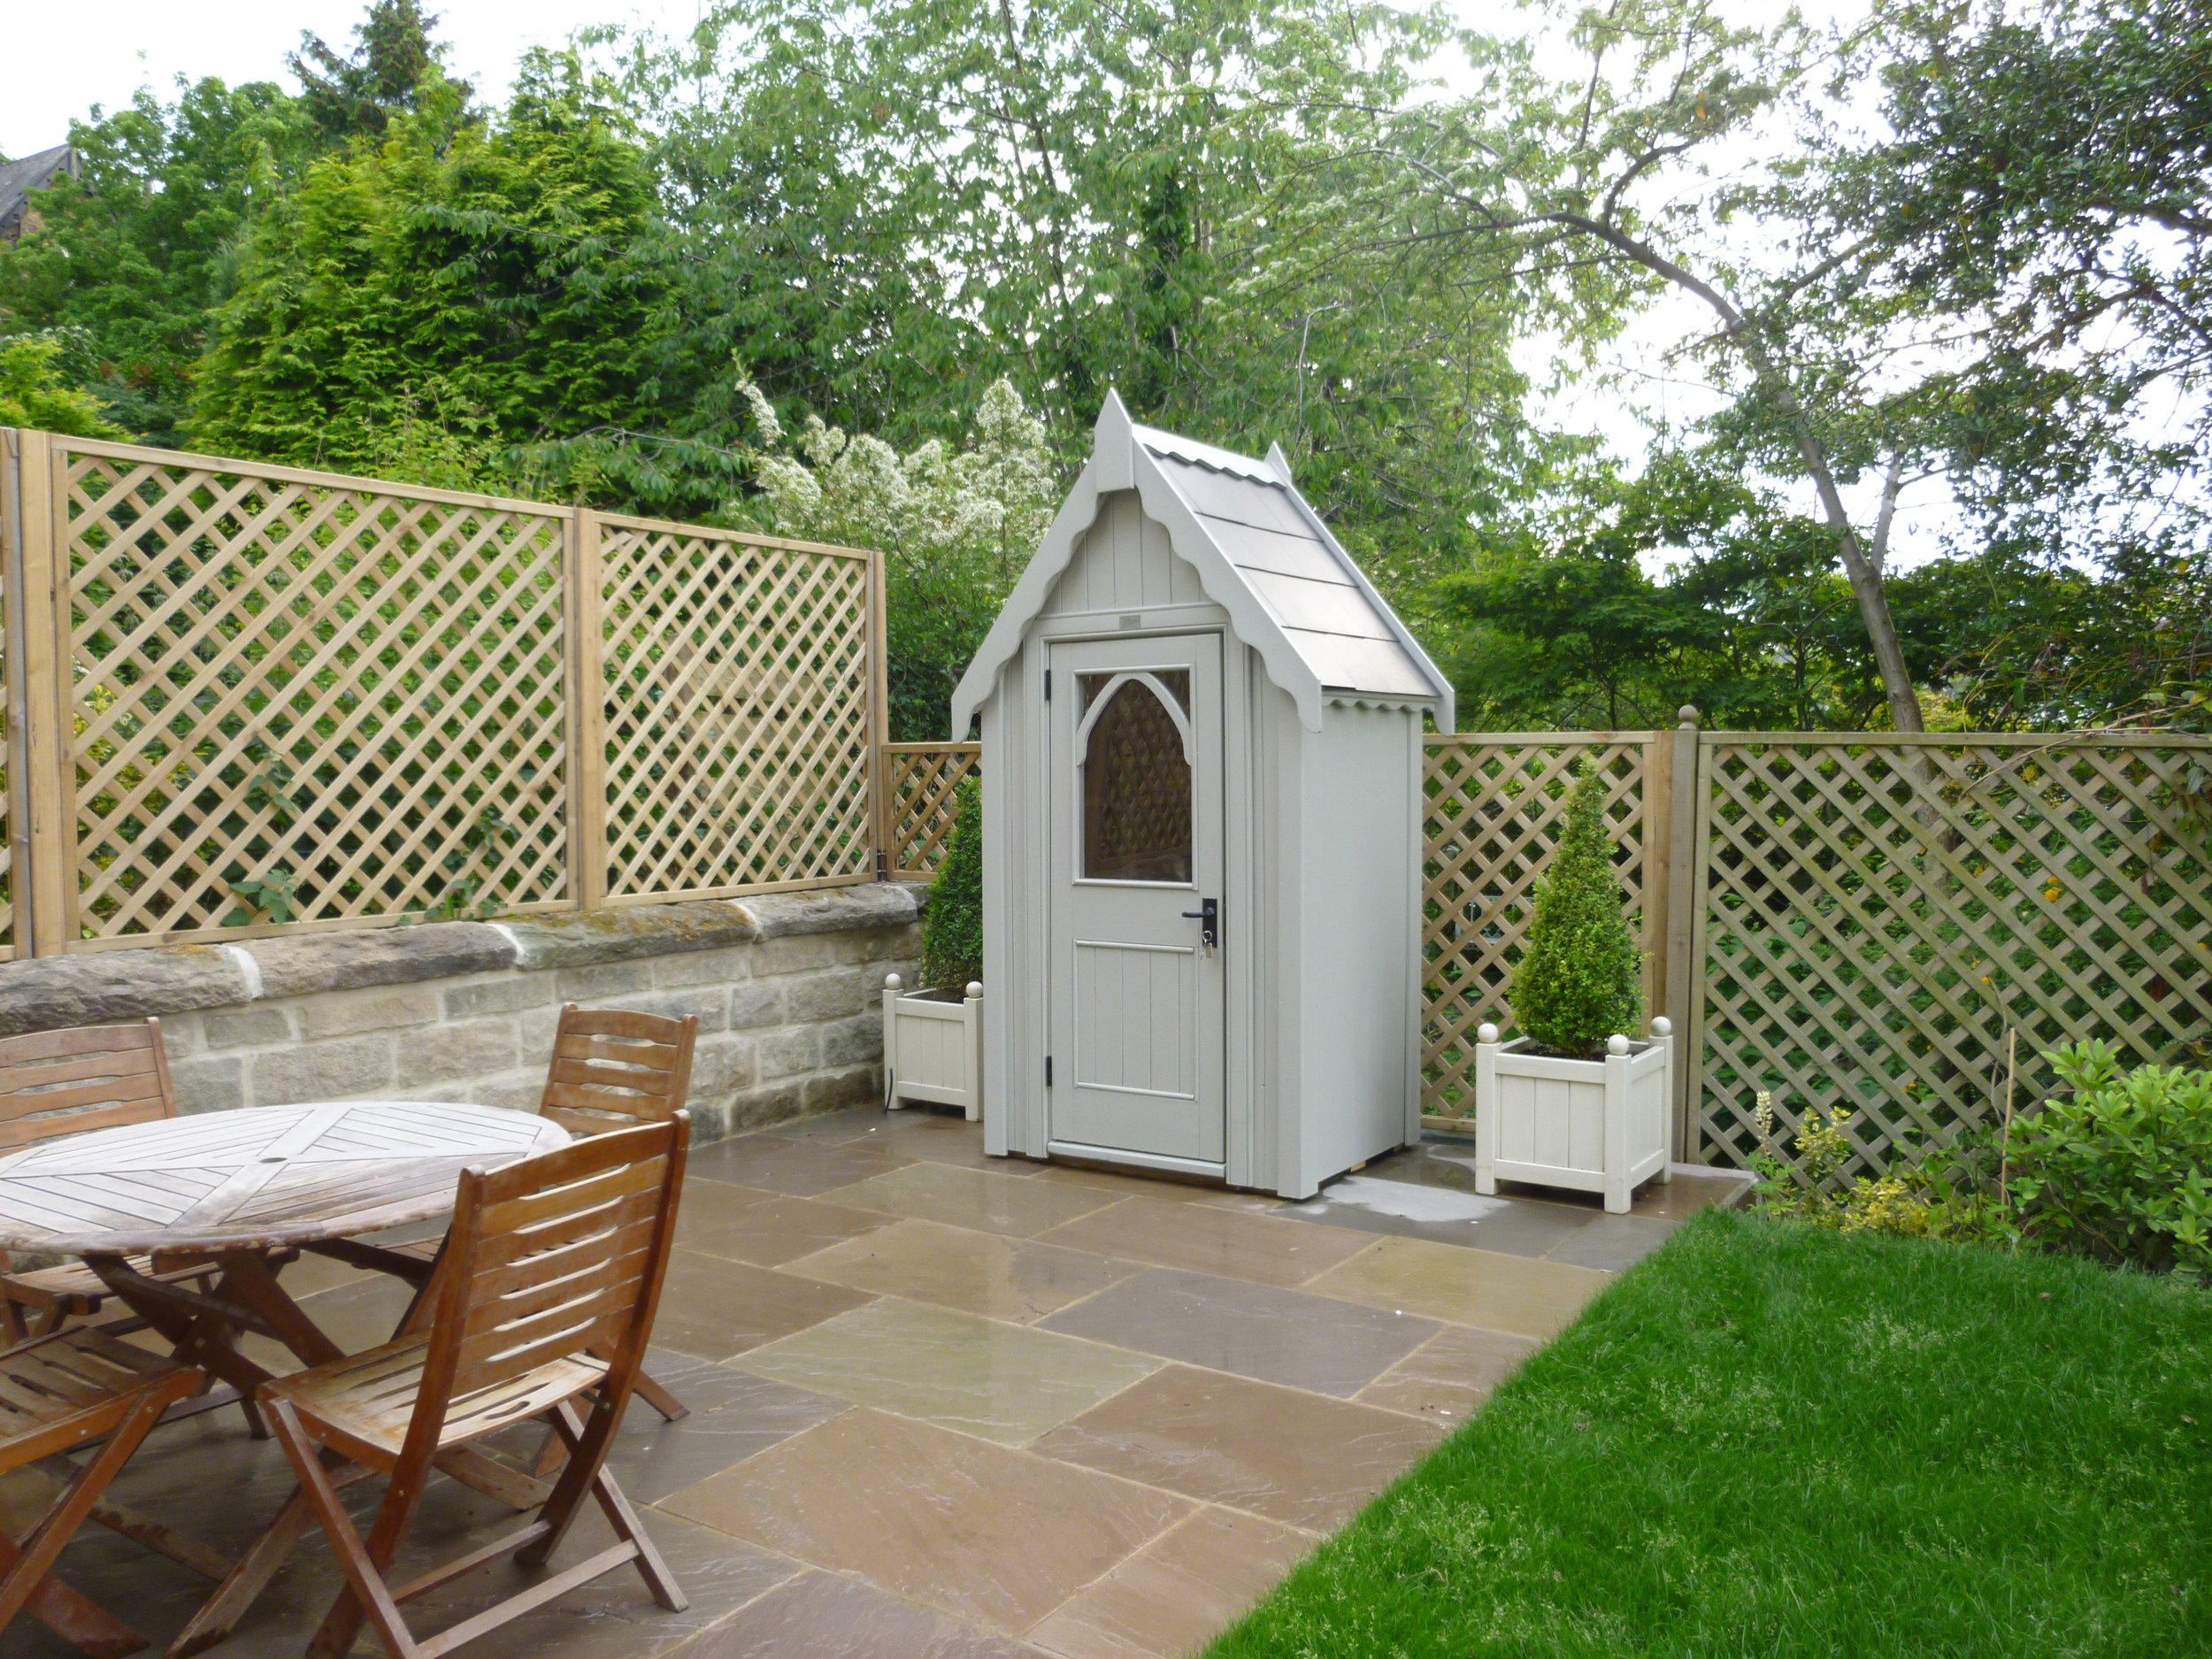 Tiny 'Gothic' styled shed supplied by the Posh Shed Company.